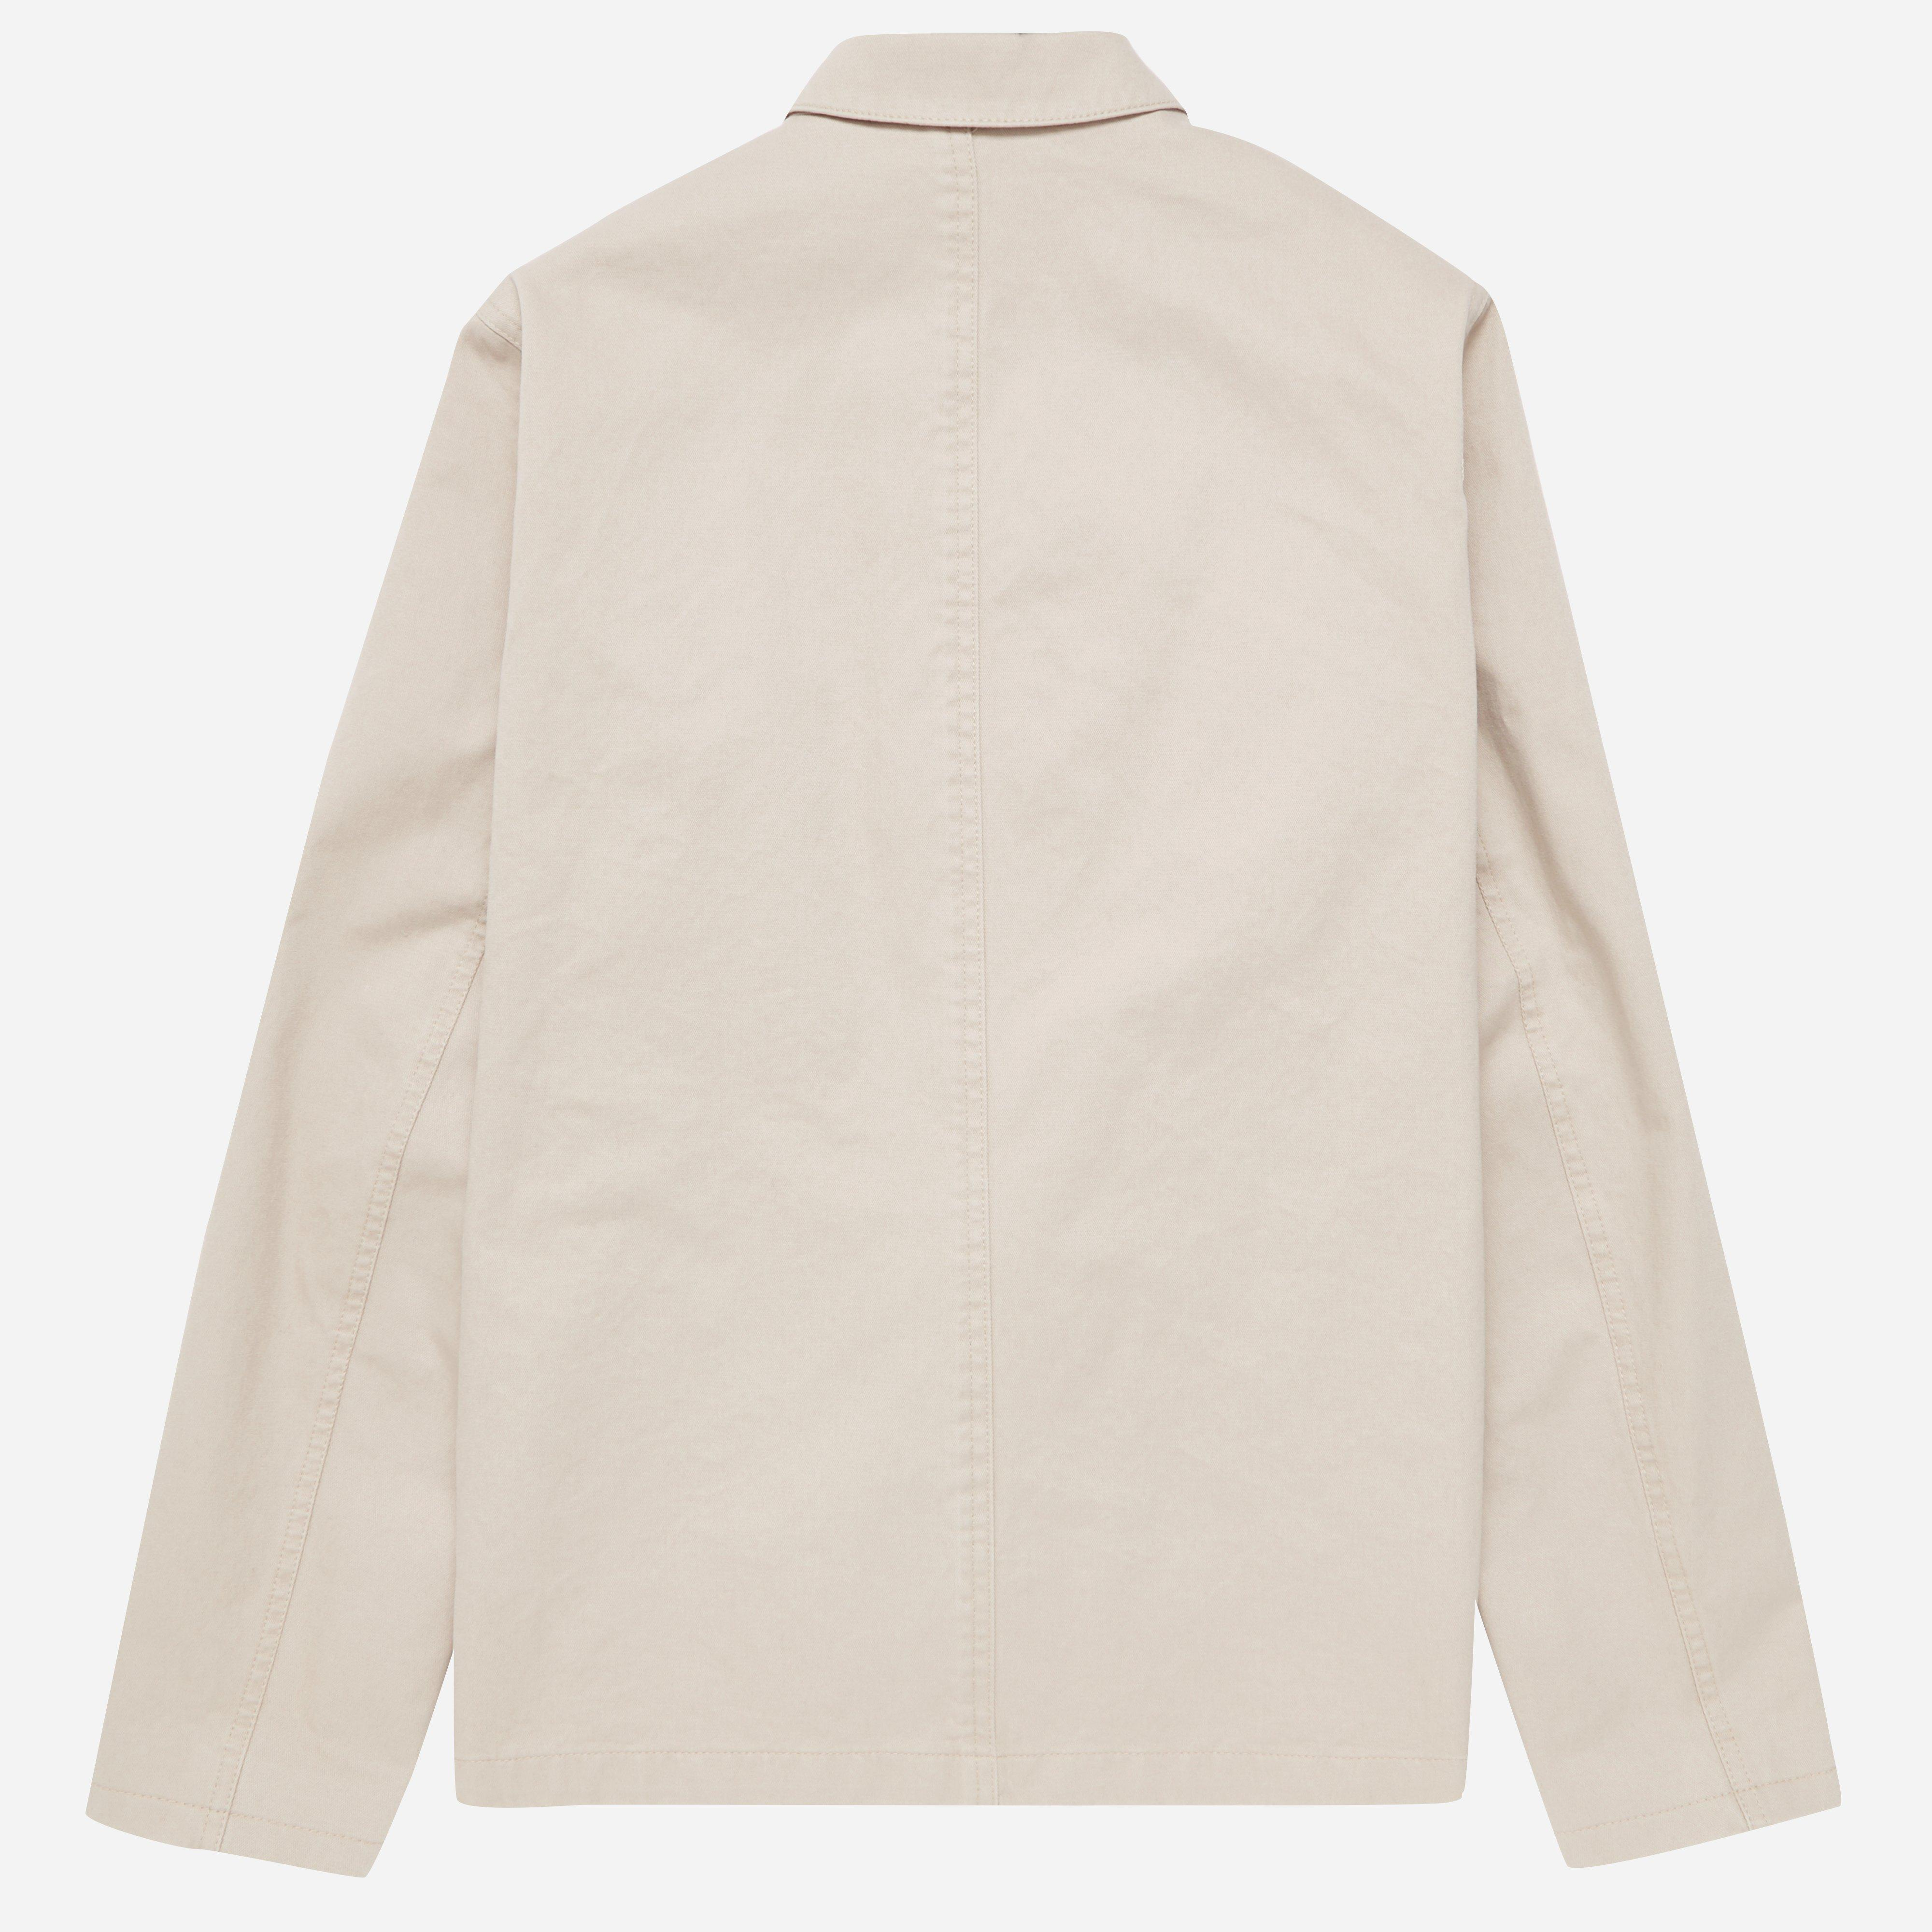 Norse Jacket Lyst For Lars Projects Men In Natural Twill Heavy 6BIO6wxqr